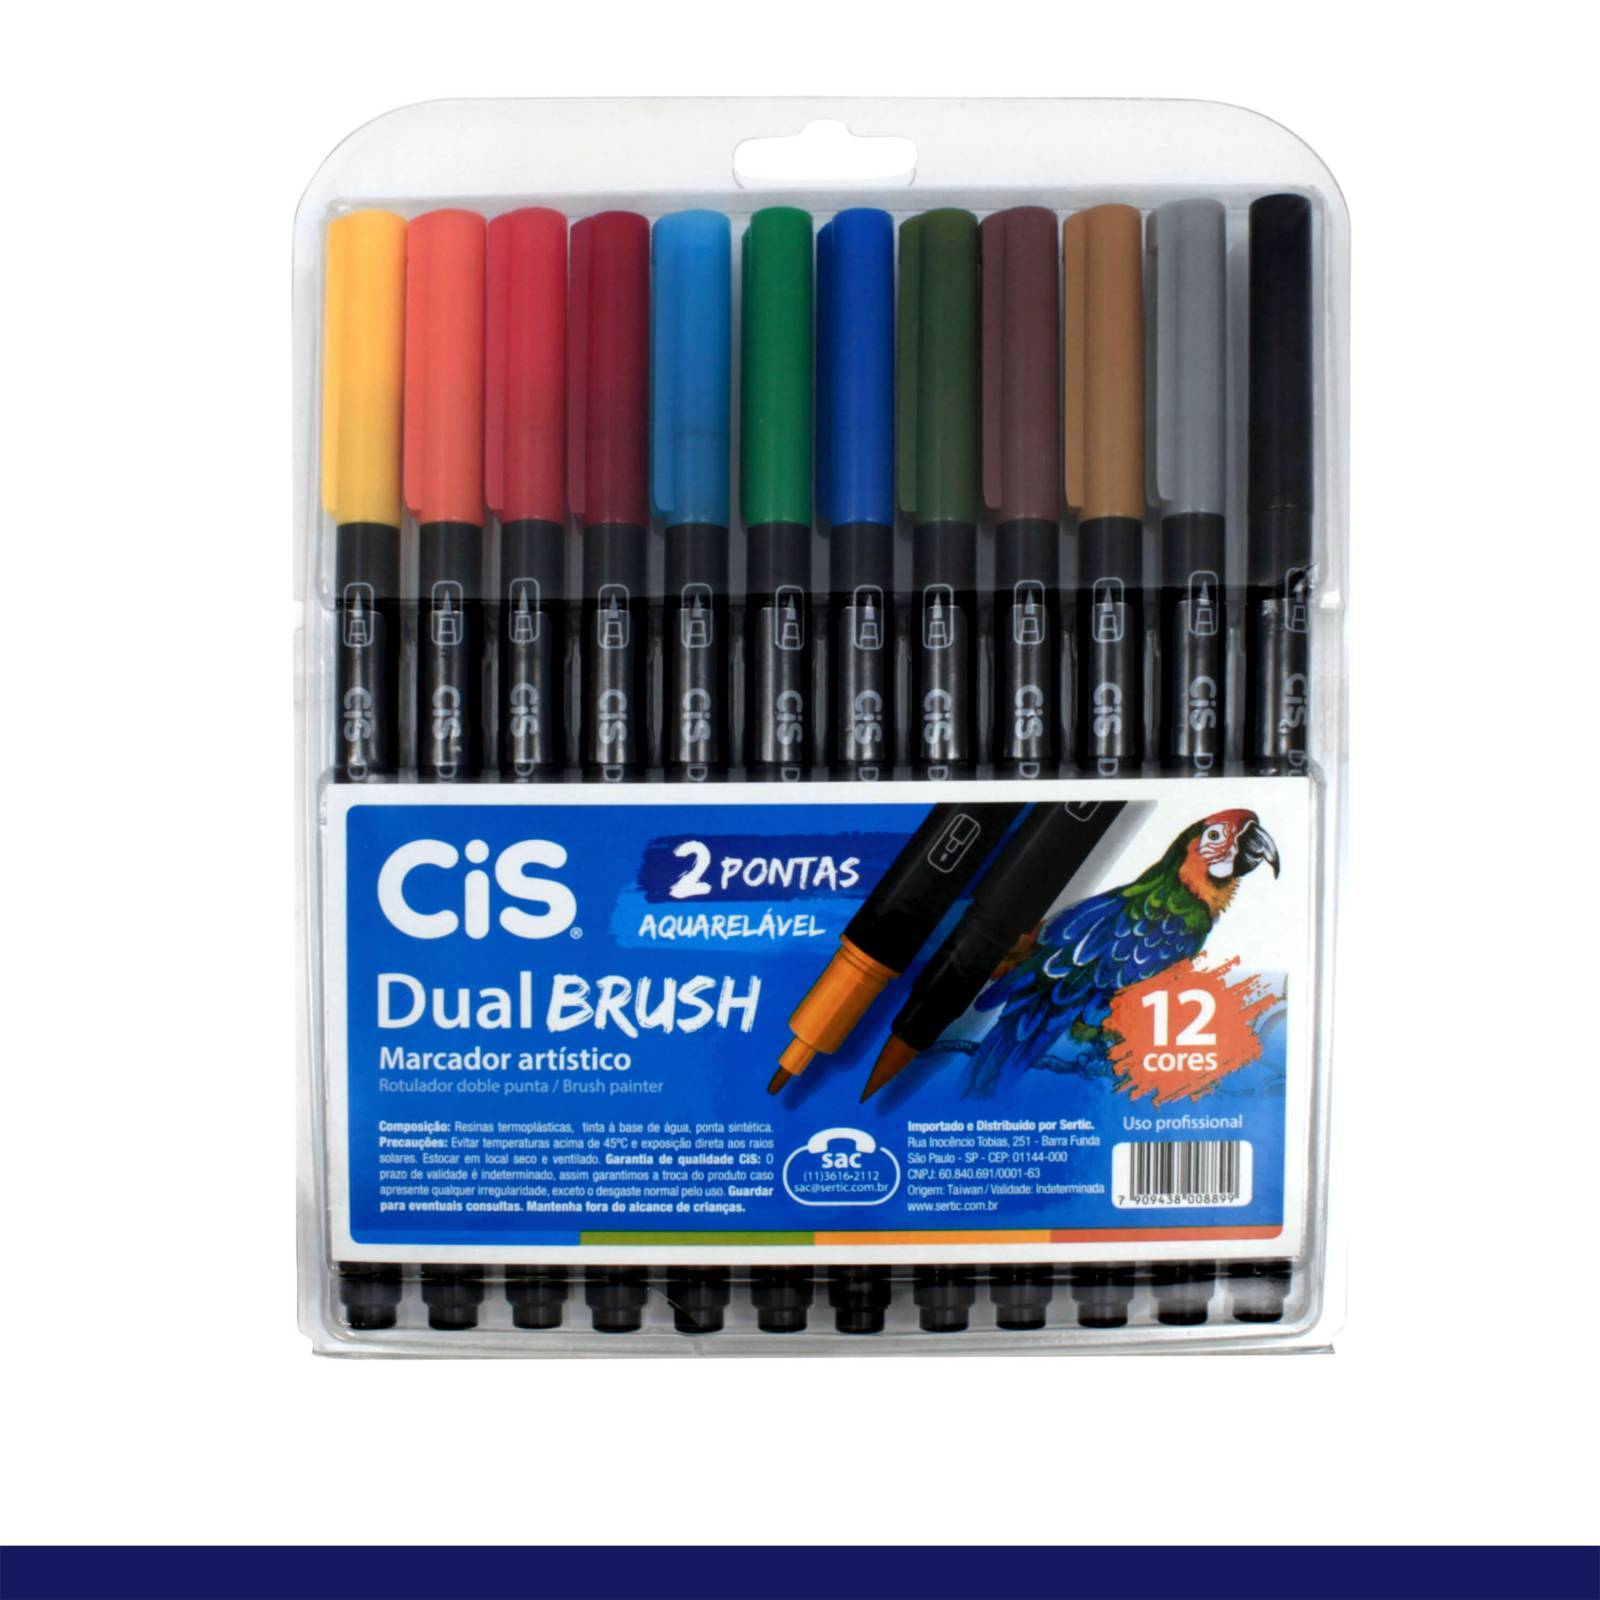 Kit Caneta CiS Dual Brush c/ 12 Cores Aquarelável - Mundo Graffiti